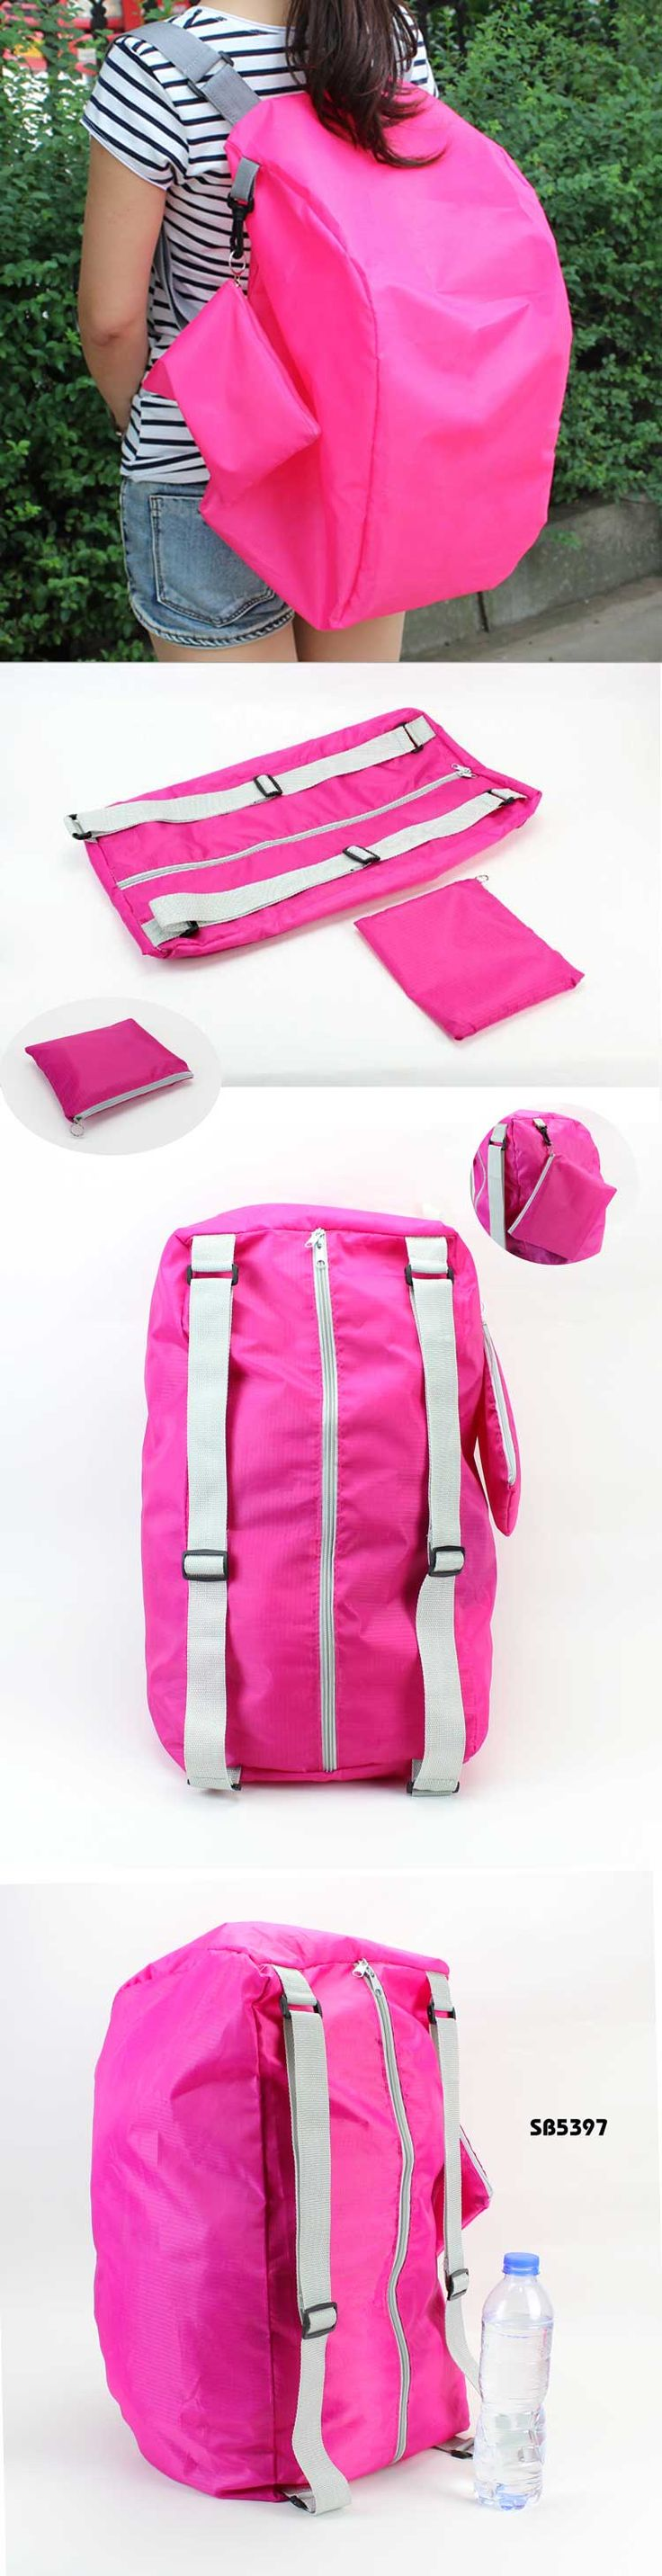 Multifunction foldable storage back pack  Description:   Bag size:54*27CM  Material:210D polyester +webbing shoulder straps Available color:green/blue/rose red/pink or customized color is welcome  logo:customized logo is ok  www.ideagroupuigm.com